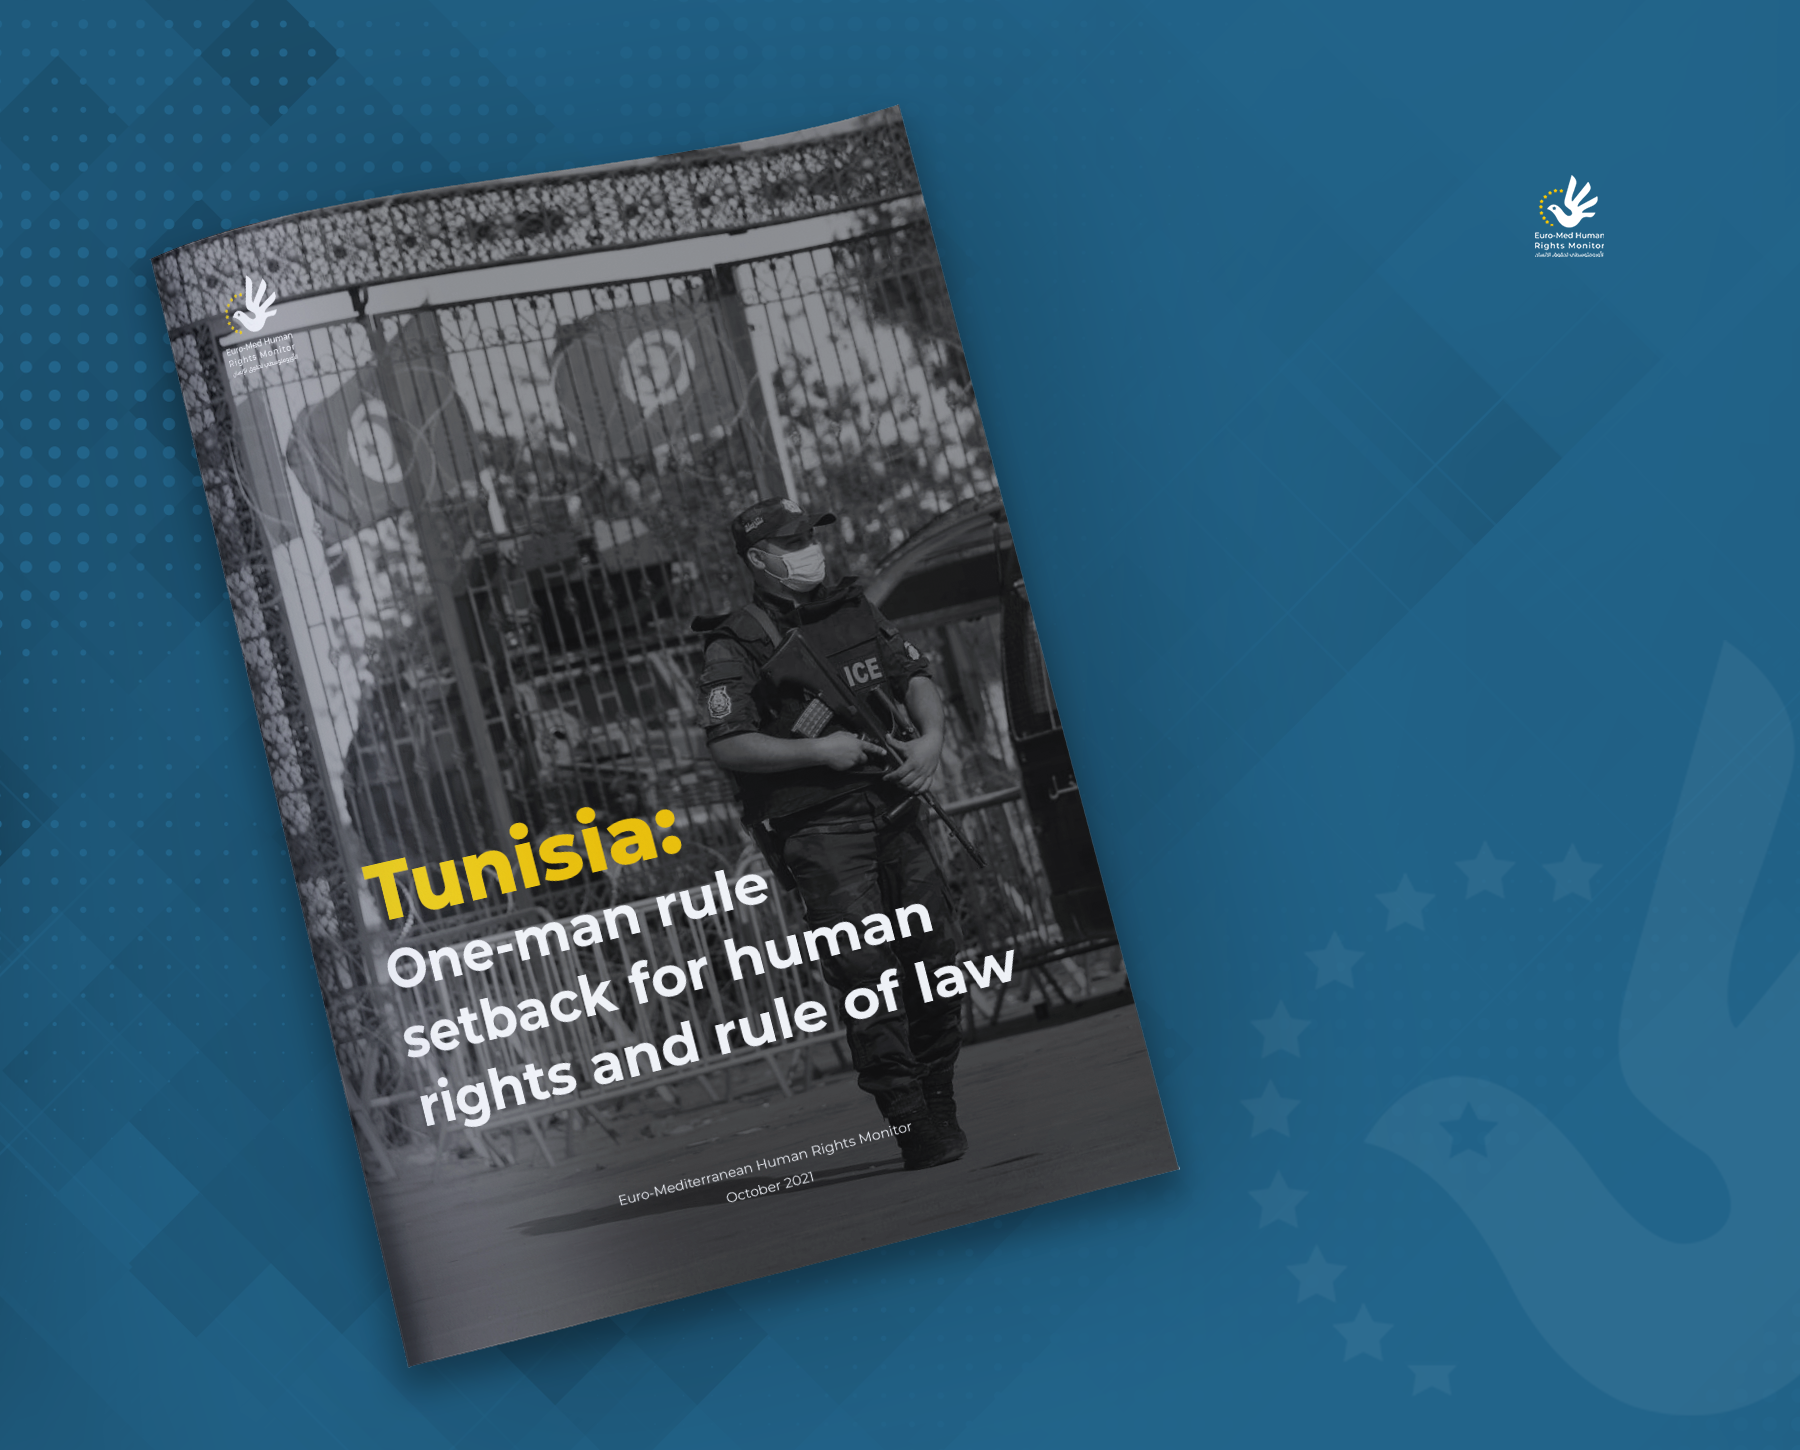 Tunisia: One-man rule setback for human rights and rule of law